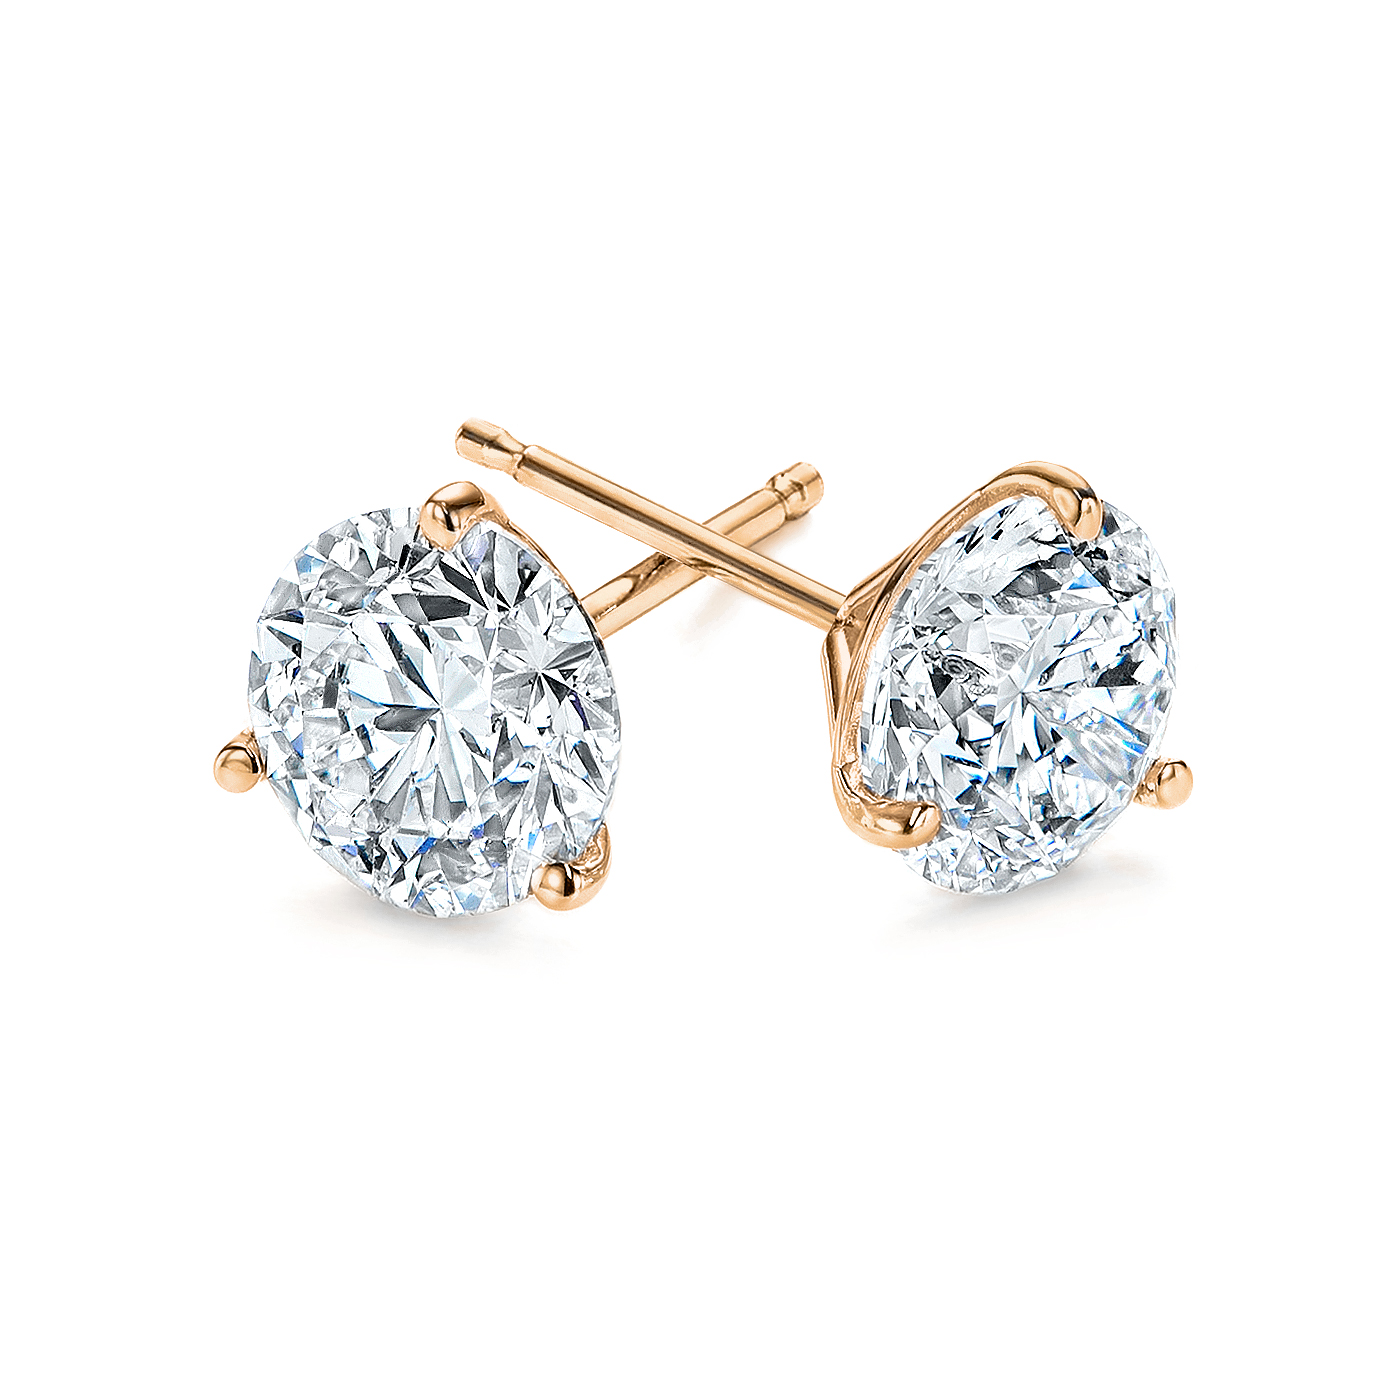 3-Prong Natural Diamond Stud Earrings